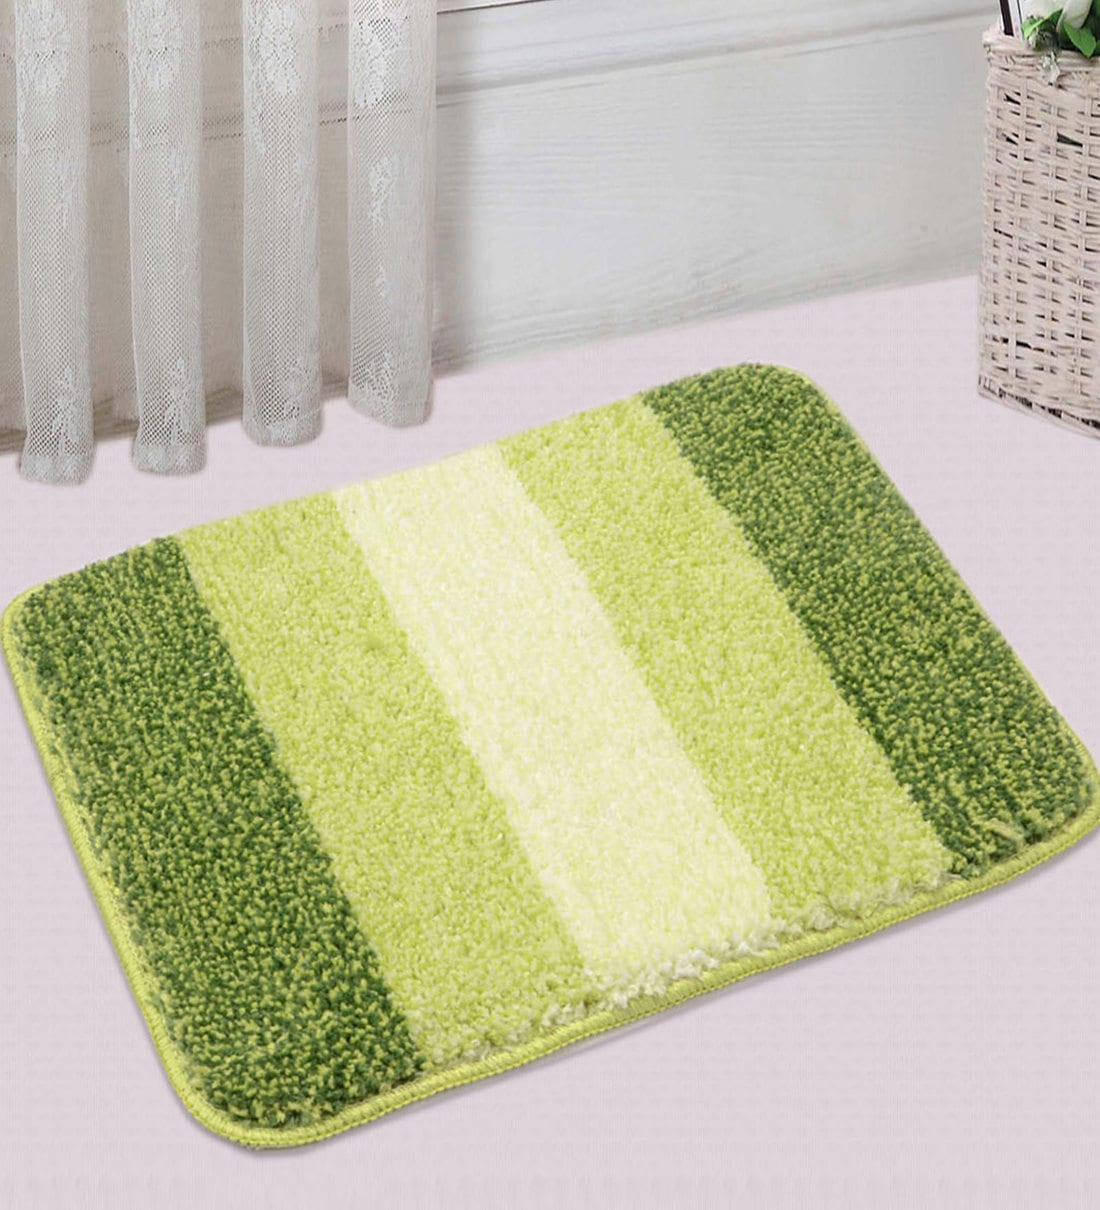 Buy Green Microfibre Plain Solid 20x14 Inches Antiskid Bath Mat Set Of 2 By Saral Home Online Solid Colour Bath Mats Bath Mats Furnishings Pepperfry Product